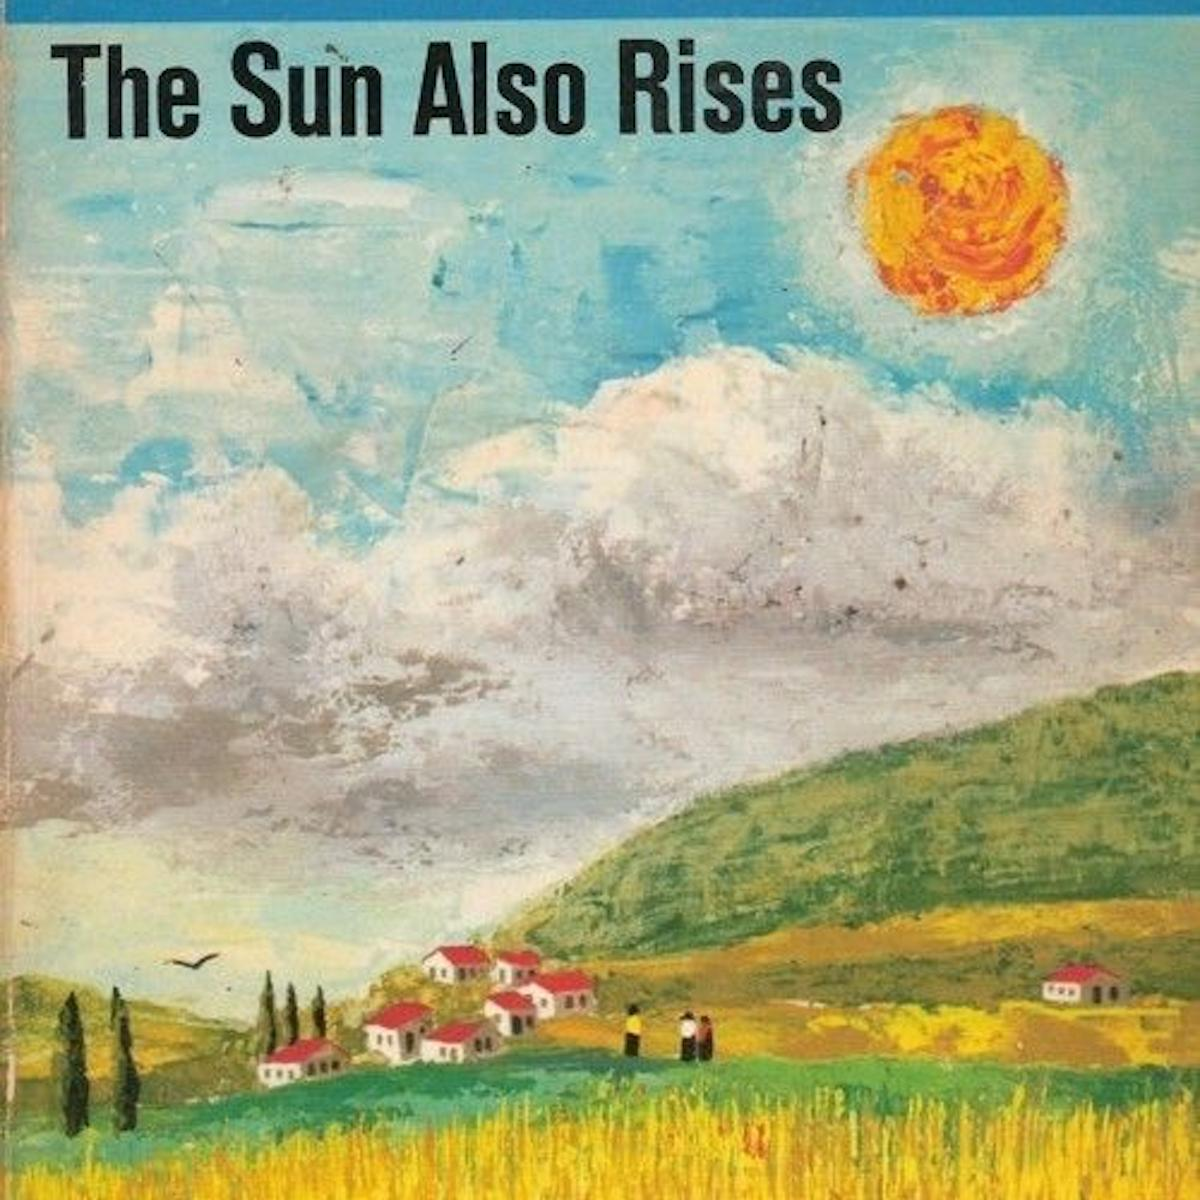 Book cover of The Sun Also Rises by Ernest Hemingway